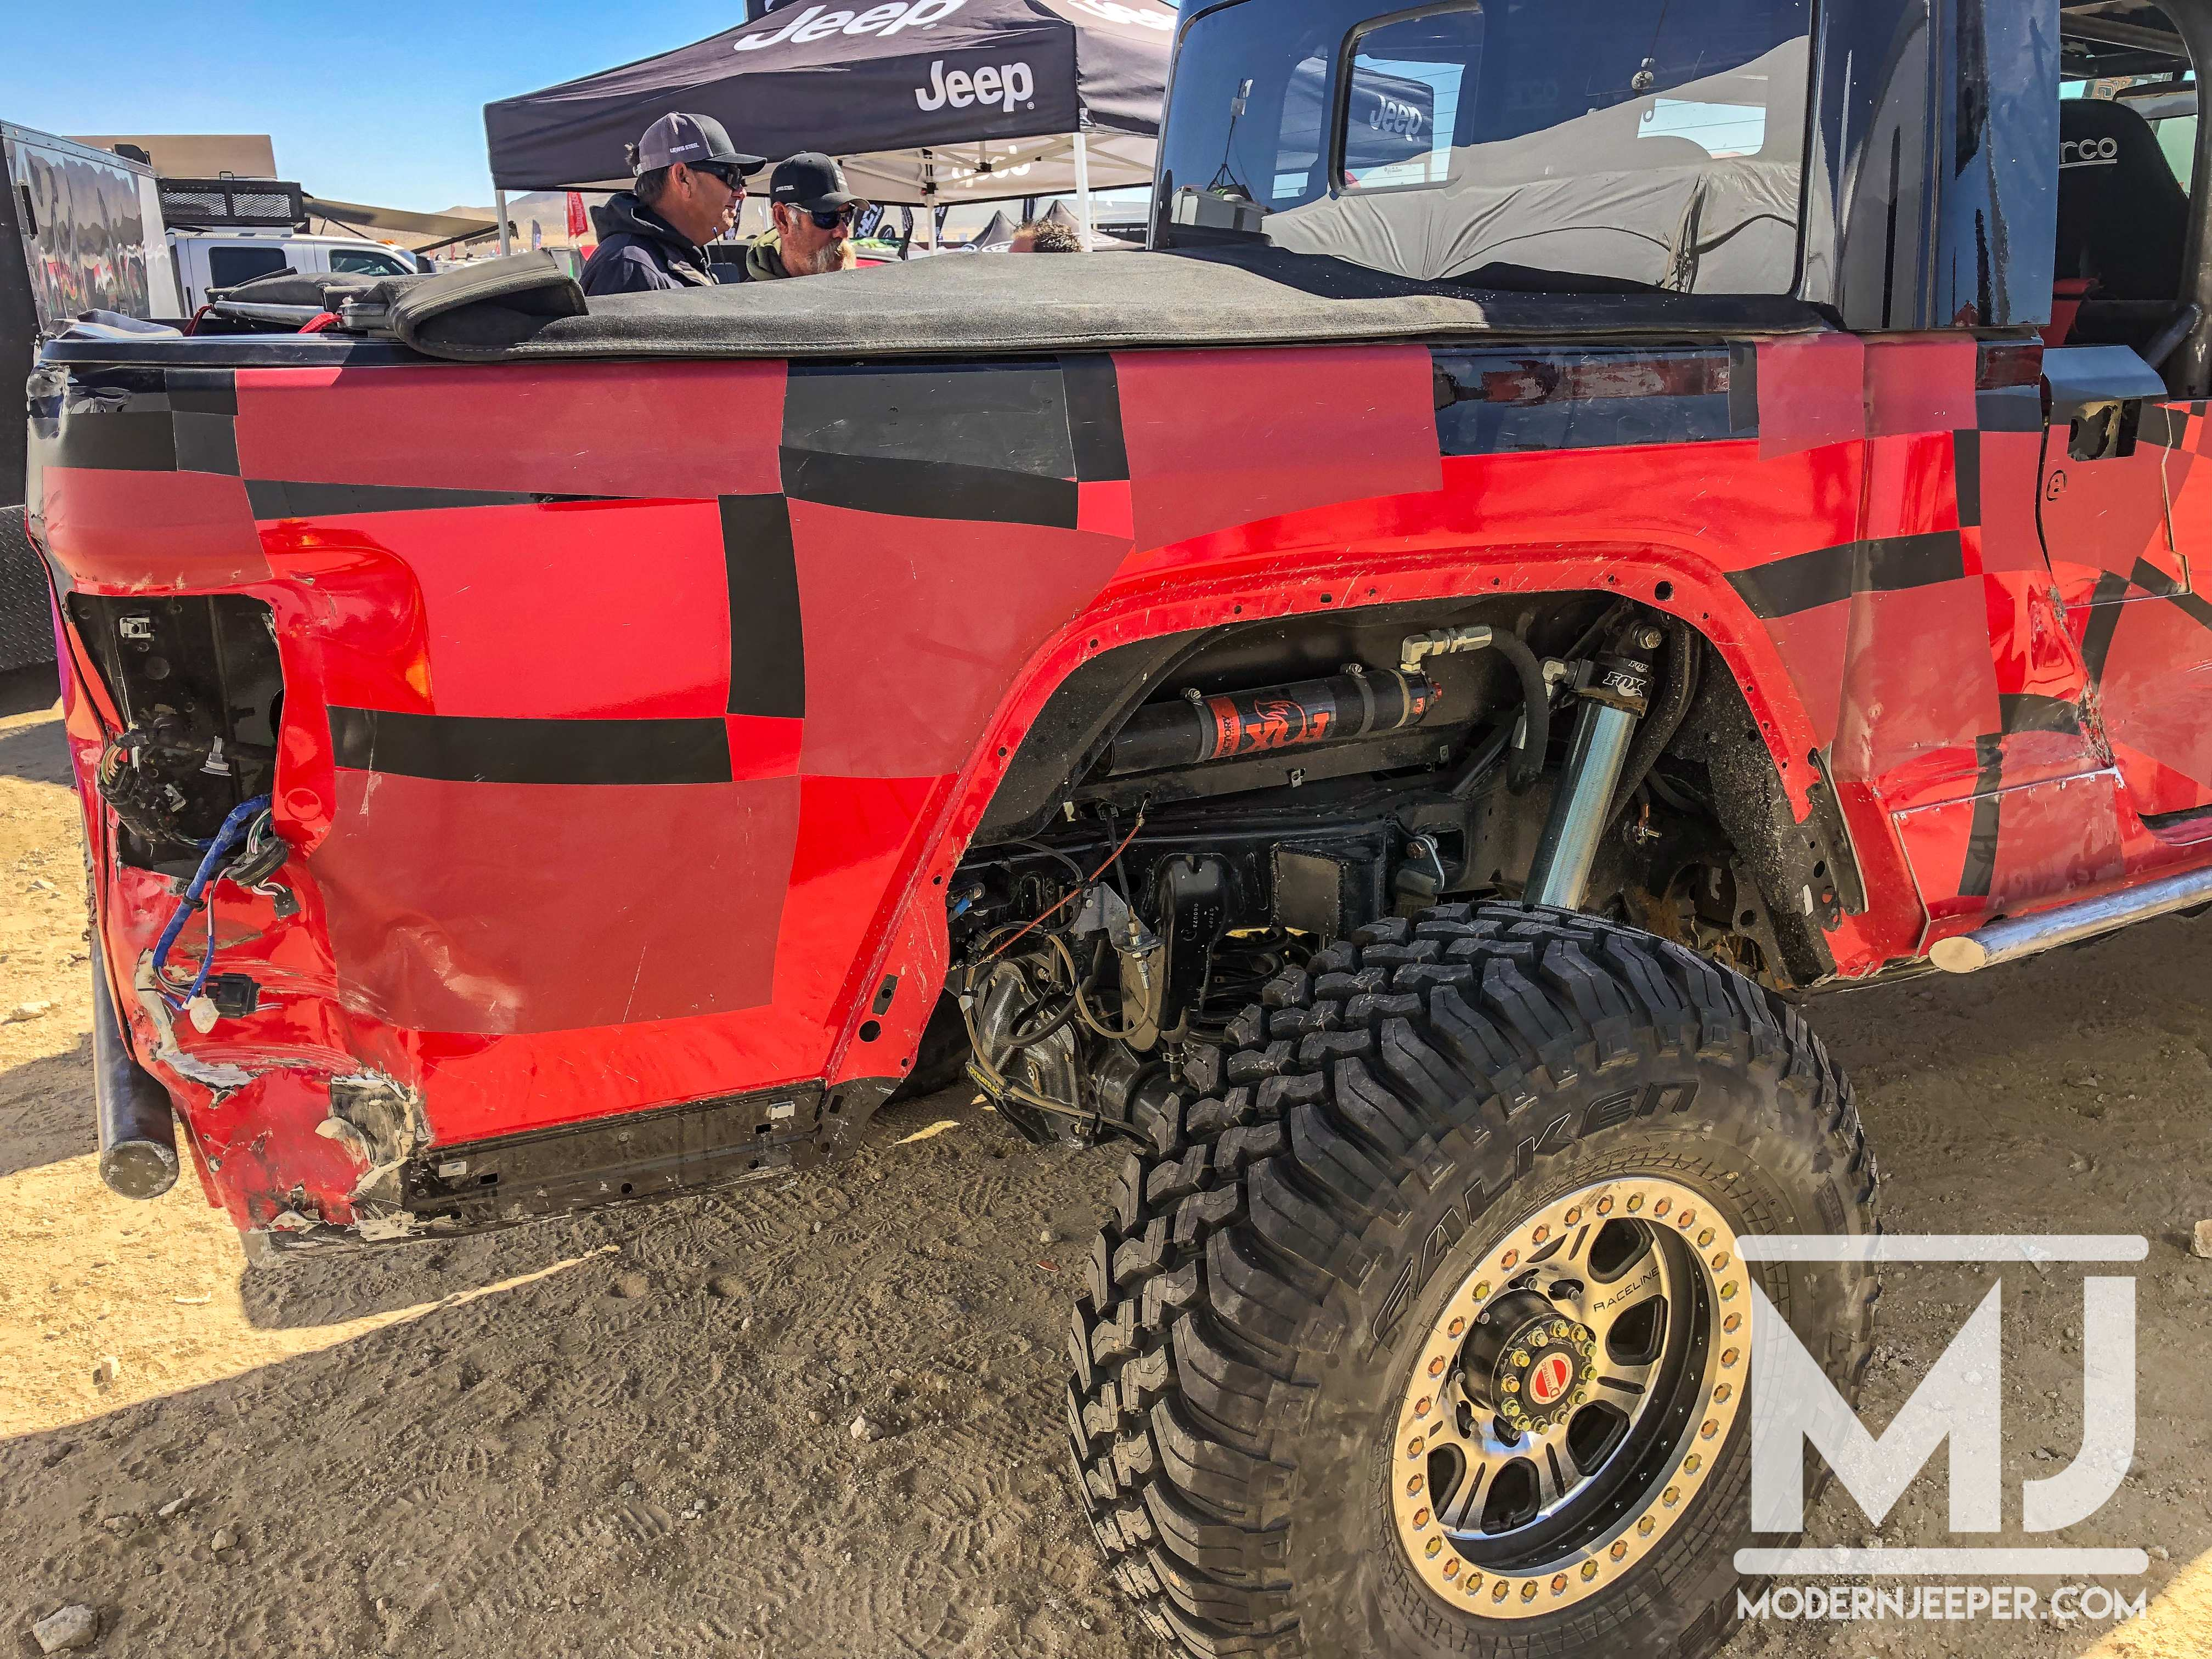 97 New 2020 Jeep Gladiator King Of The Hammers Specs and Review by 2020 Jeep Gladiator King Of The Hammers